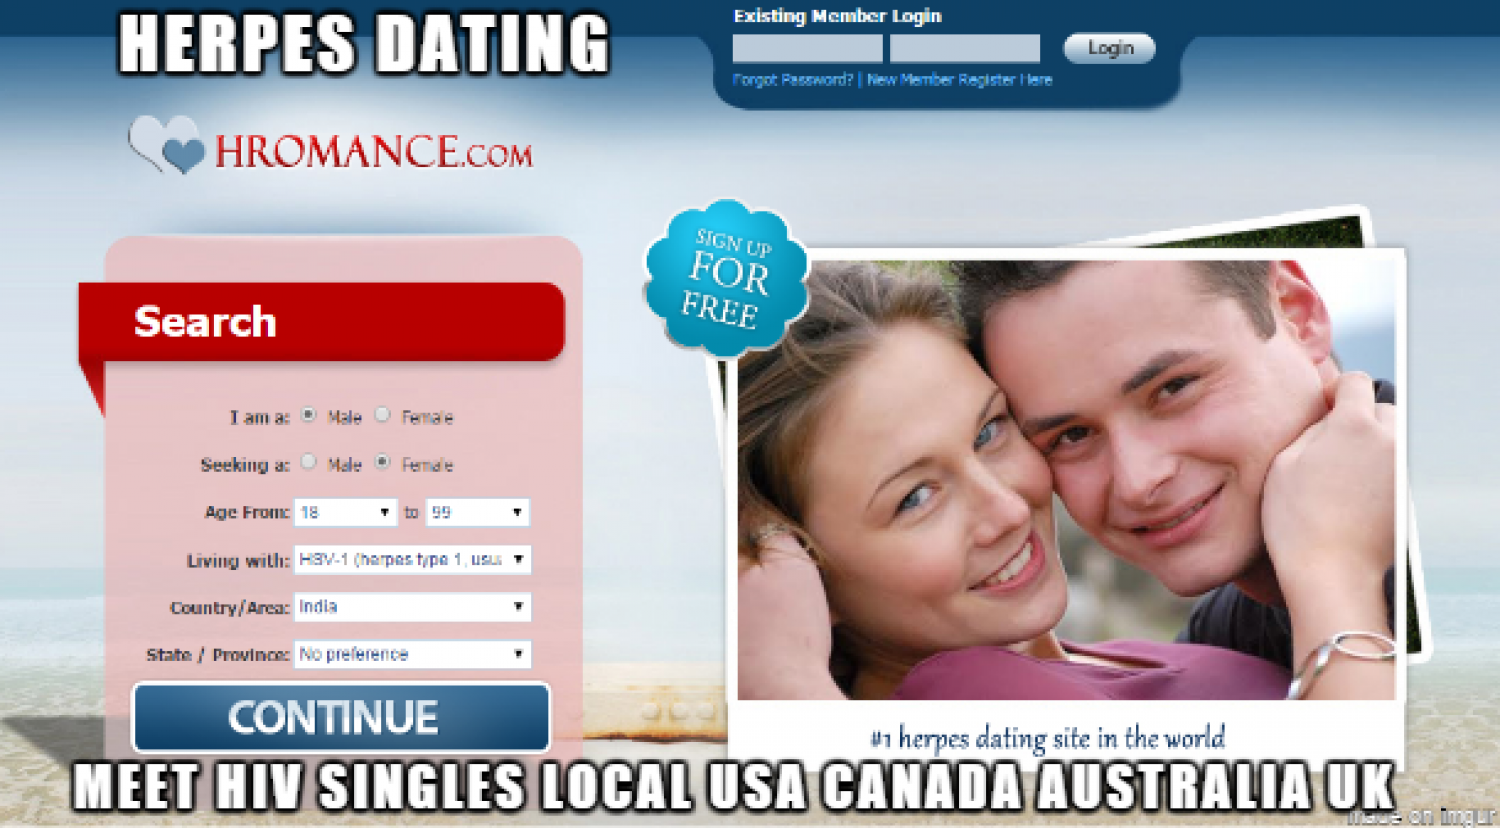 dating sites in australia Today, australia's best dating sites all take the safety and security of their users very seriously most sites make it simple to block unwanted users and report inappropriate behaviour zoosk takes user safety to a new level.